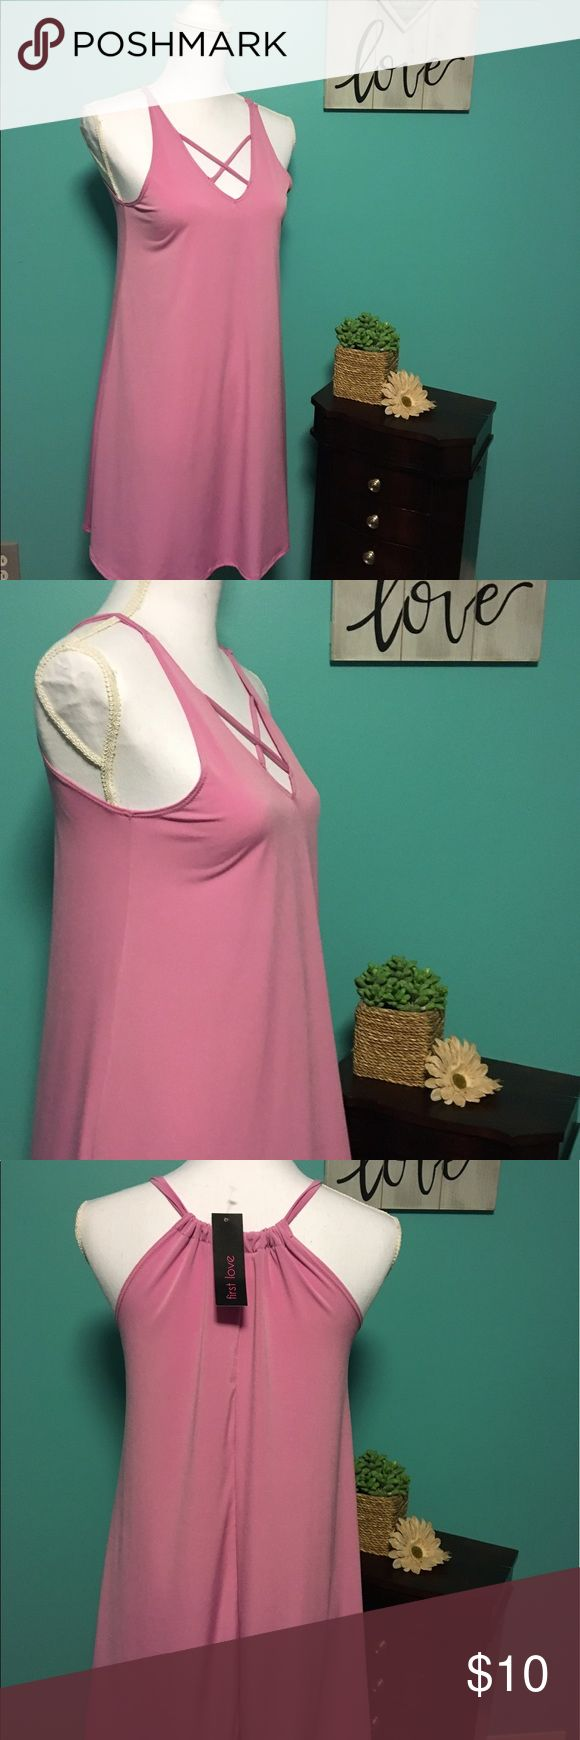 NWT pink flowy summer dress Brand new, never worn flowy pink dress. Cross front. Very light weight, perfect for hot summer days. Bought to wear on vacation but never made it out of my suitcase. Dresses